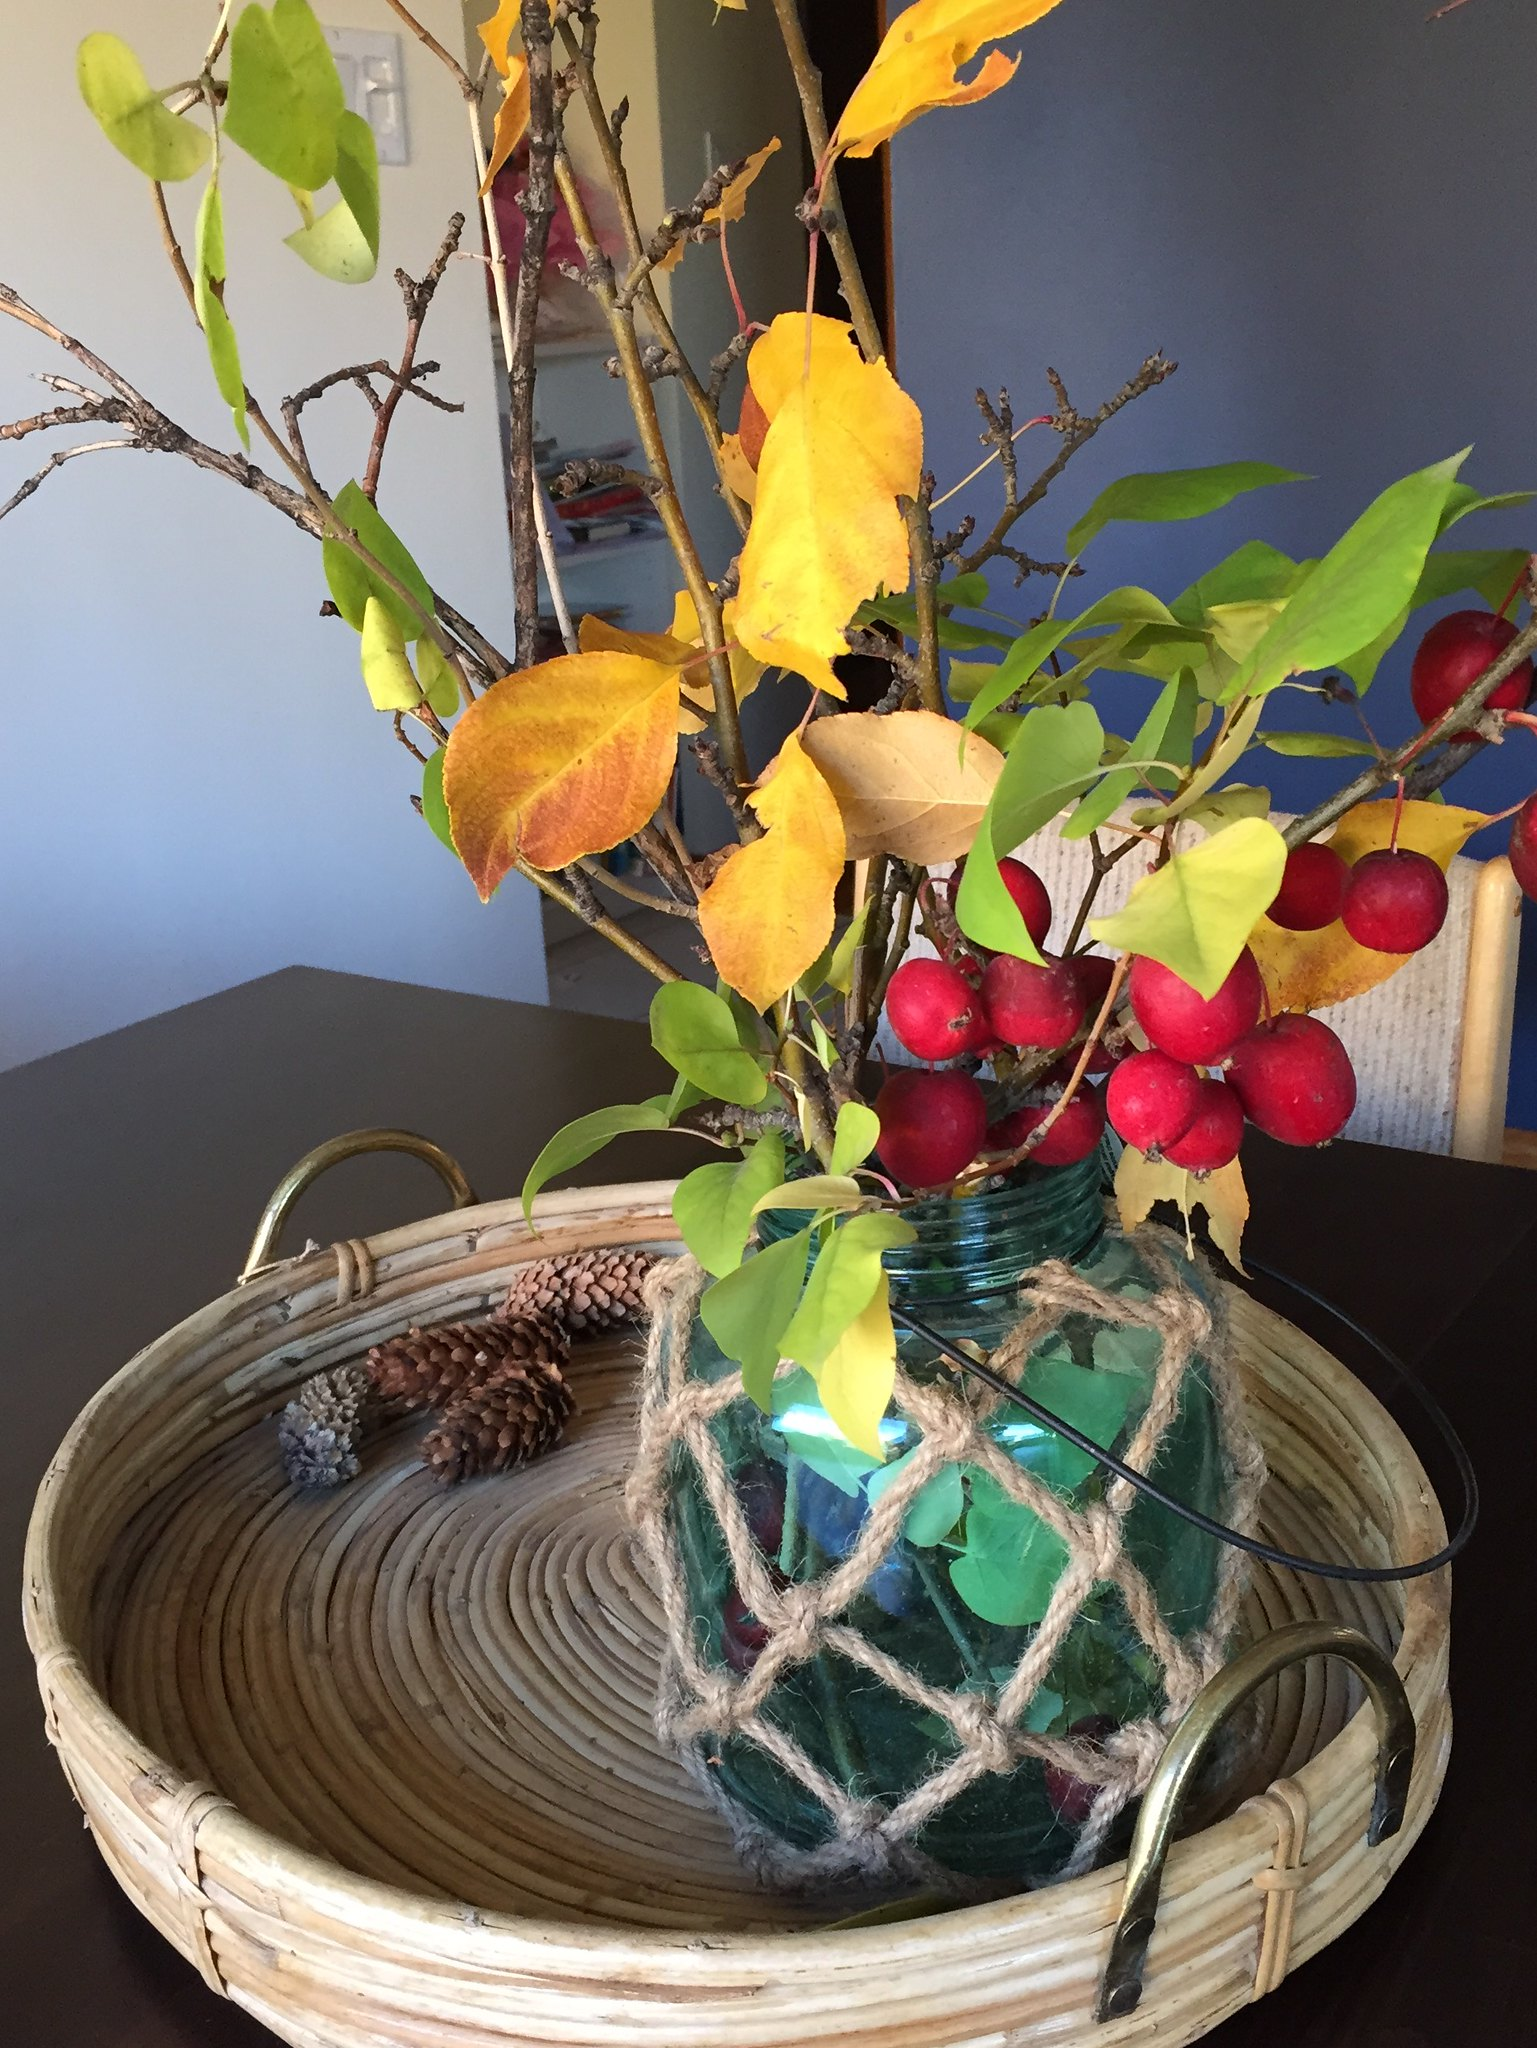 Autumn arrangement in round wicker tray on dining room table